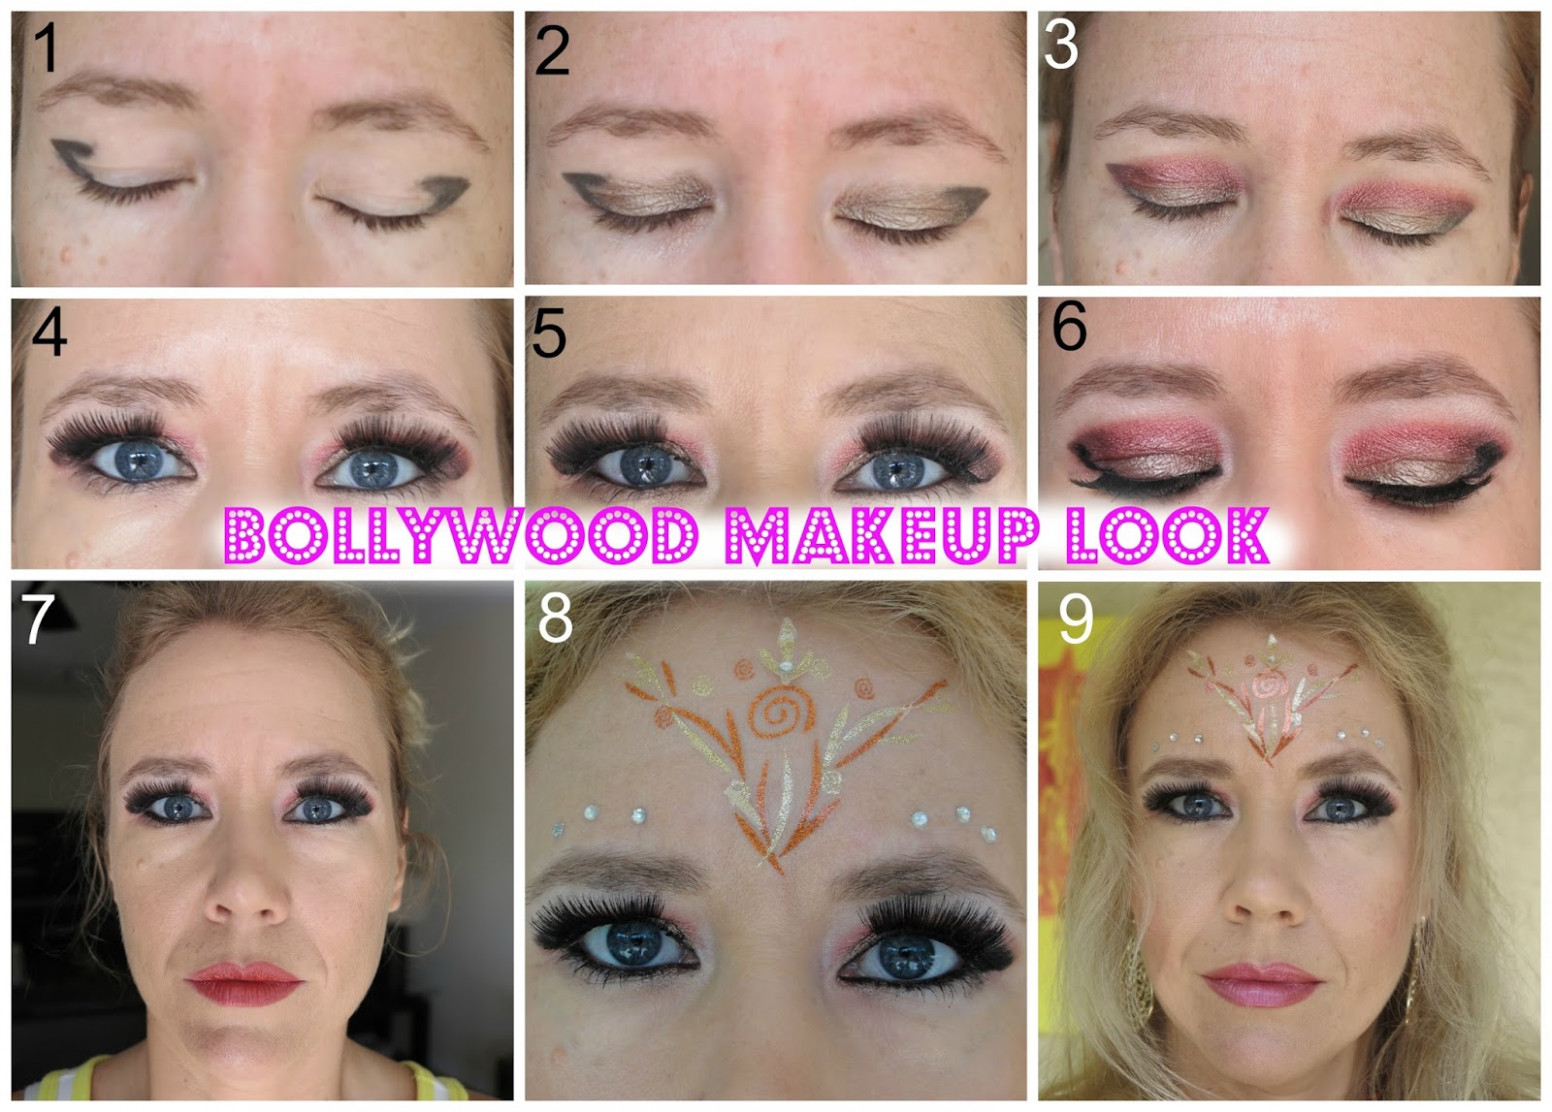 BOLLYWOOD INSPIRED MAKEUP LOOK! - bollywood eye makeup tutorial